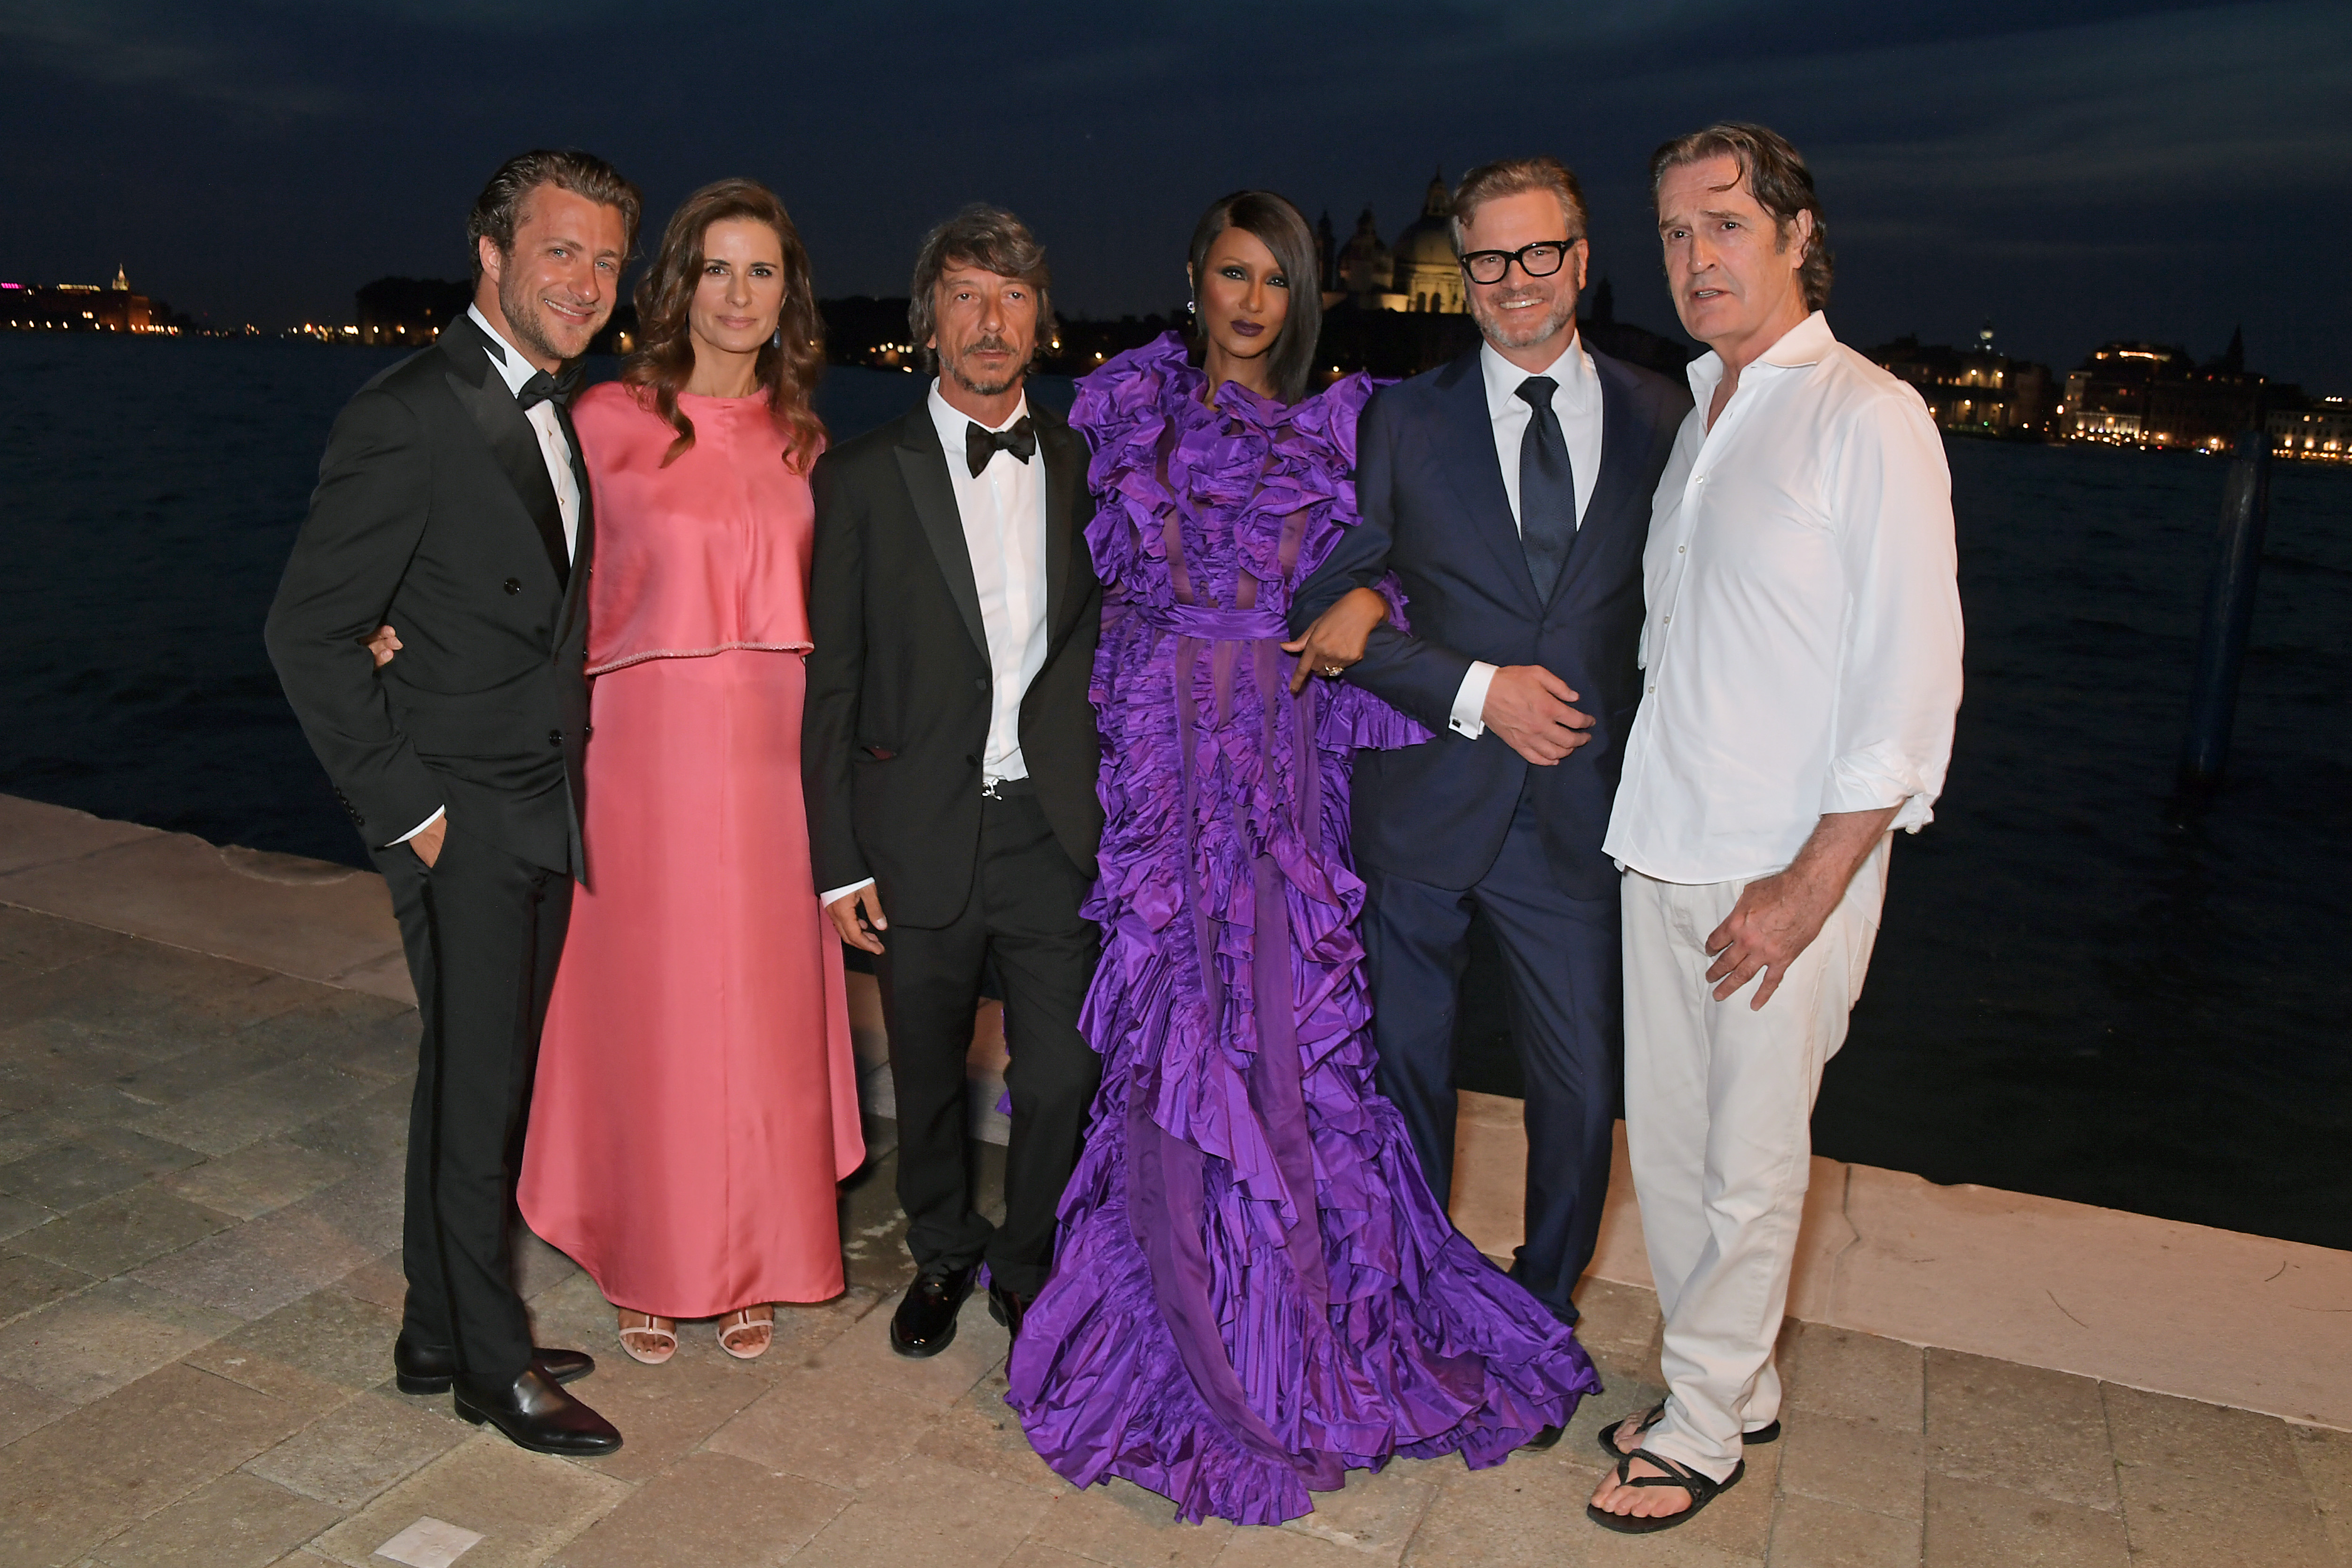 VENICE, ITALY - AUGUST 27: (L to R) Francesco Carrozzini, Livia Firth, Pierpaolo Piccioli, Iman, Colin Firth and Rupert Everett attend the third Franca Sozzani Award 2019 at the Belmond Cipriani Hotel on August 27, 2019 in Venice, Italy.  (Photo by David M. Benett/Dave Benett/Getty Images for Eco-Age)